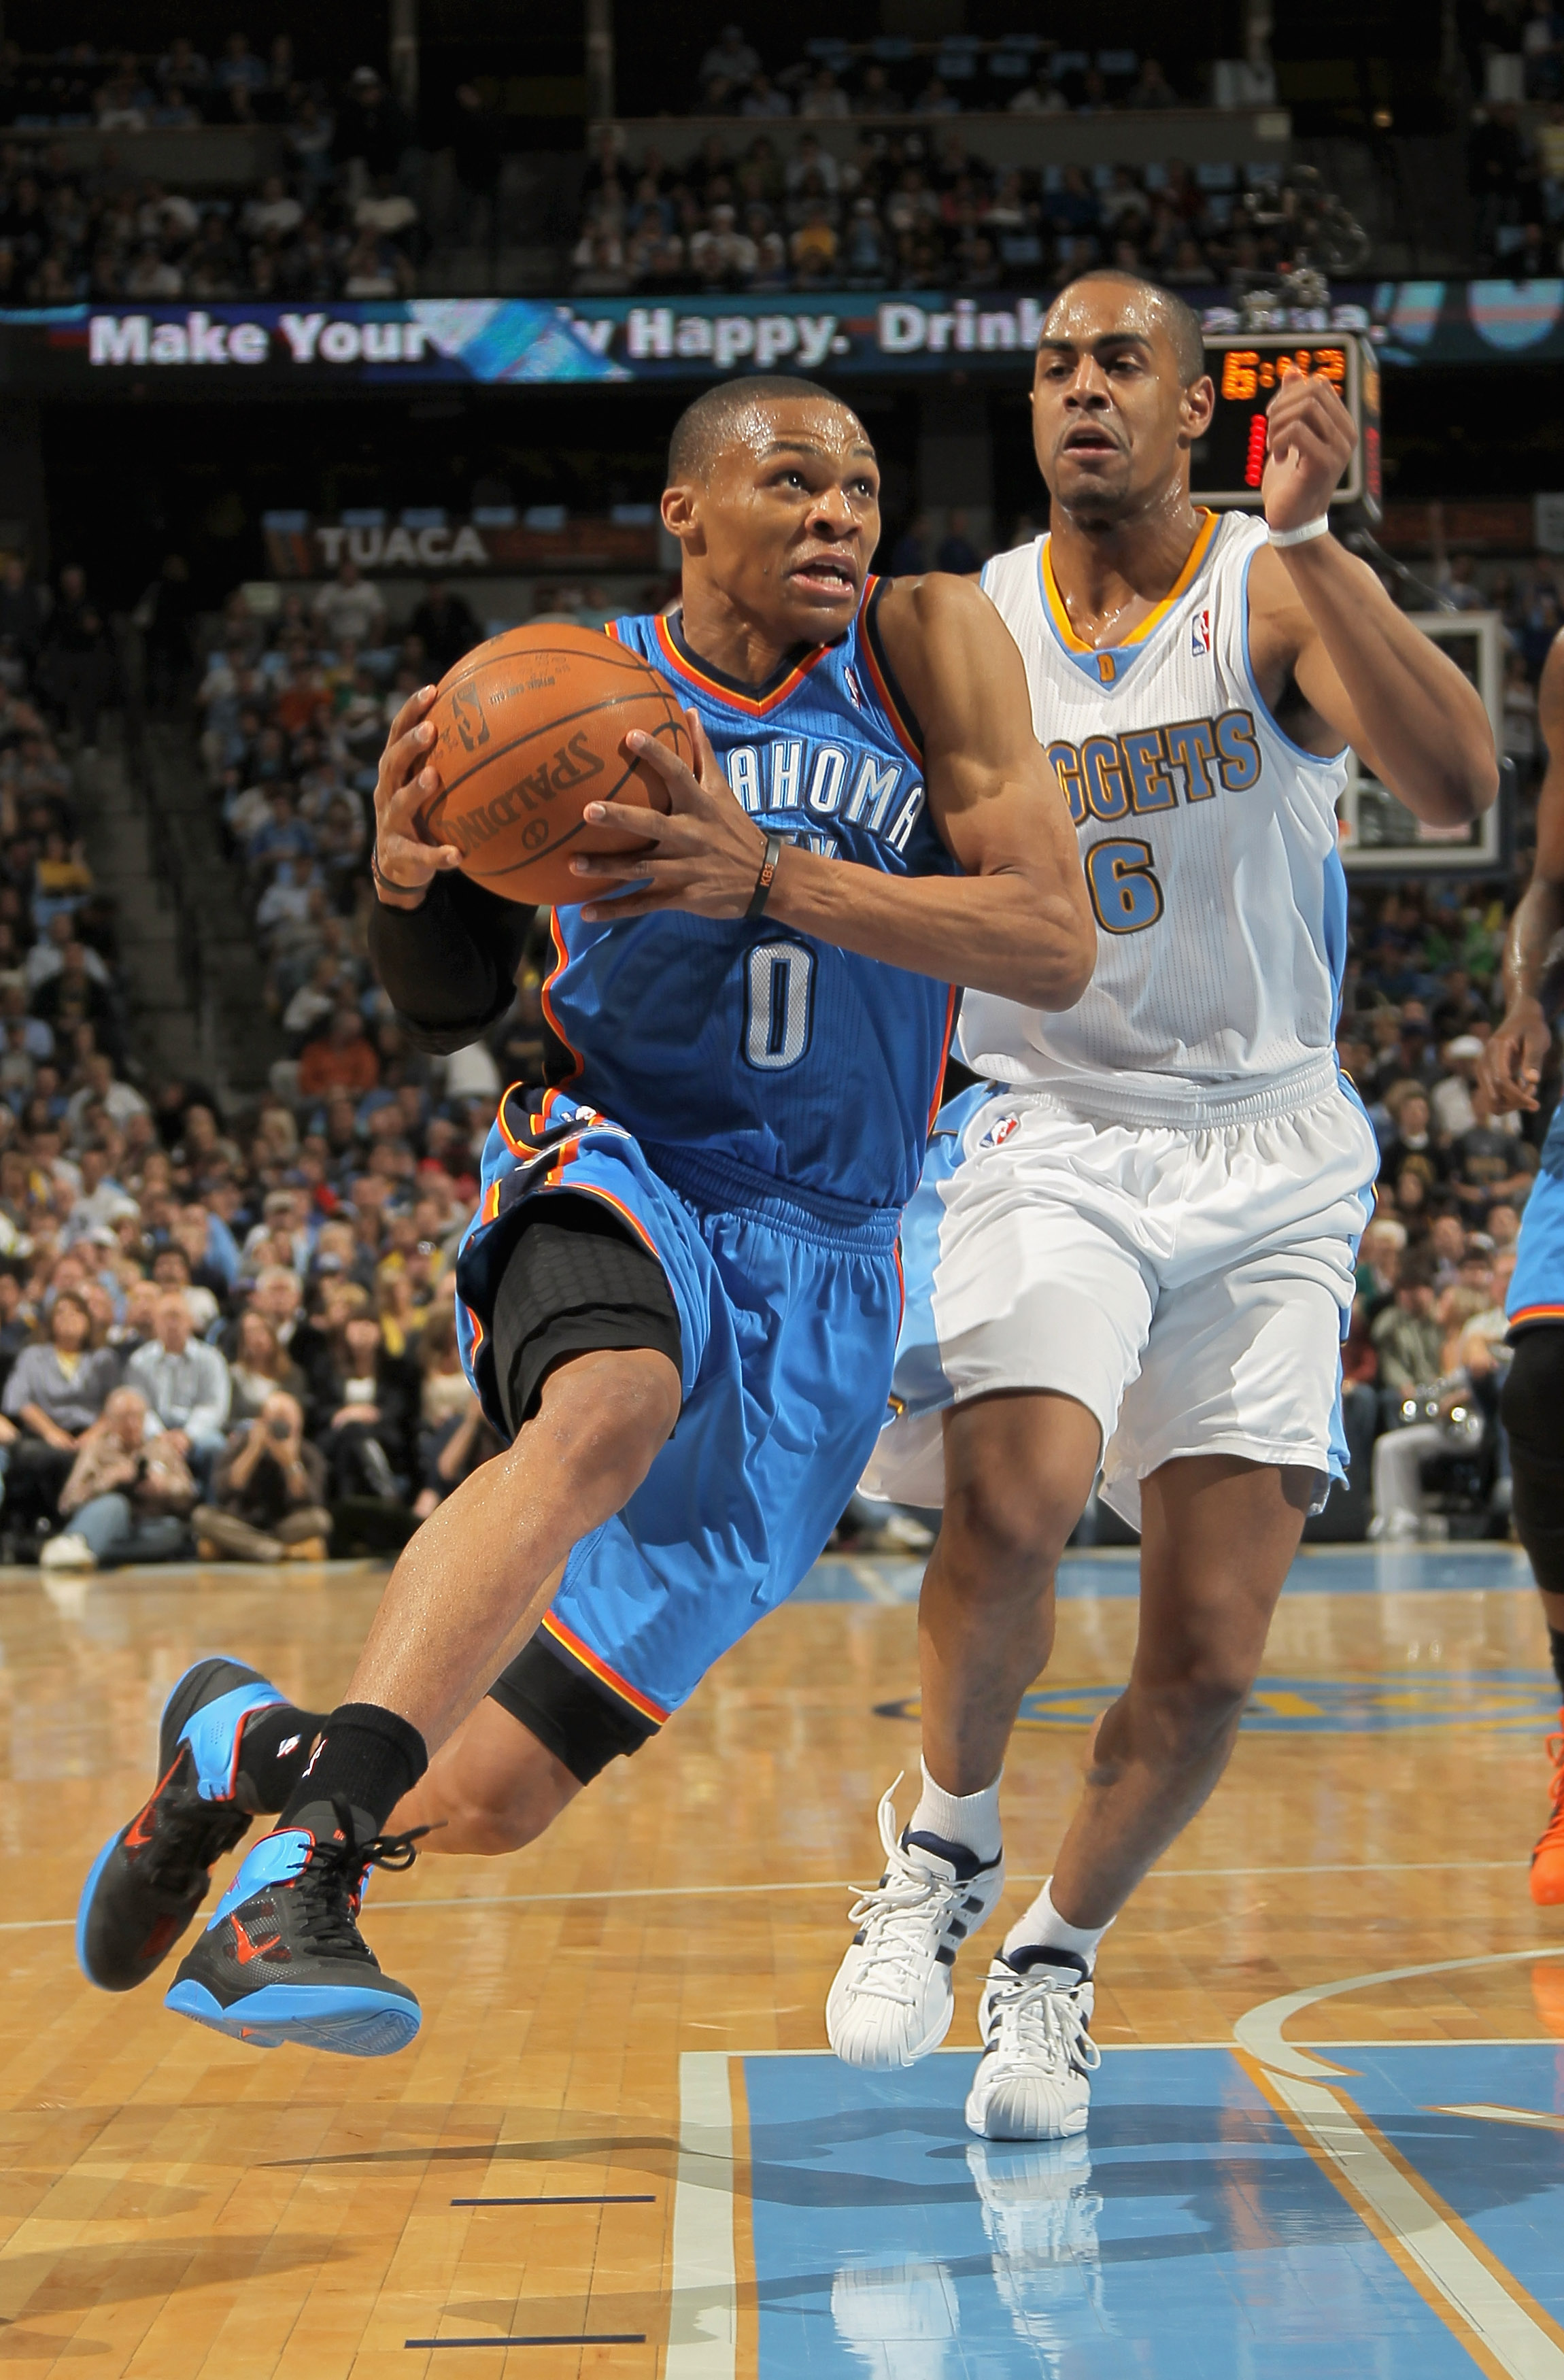 DENVER, CO - APRIL 25:  Russell Westbrook #0 of the Oklahoma City Thunder drives past Arron Afflalo #6 of the Denver Nuggets in Game Four of the Western Conference Quarterfinals in the 2011 NBA Playoffs on April 24, 2011 at the Pepsi Center in Denver, Col